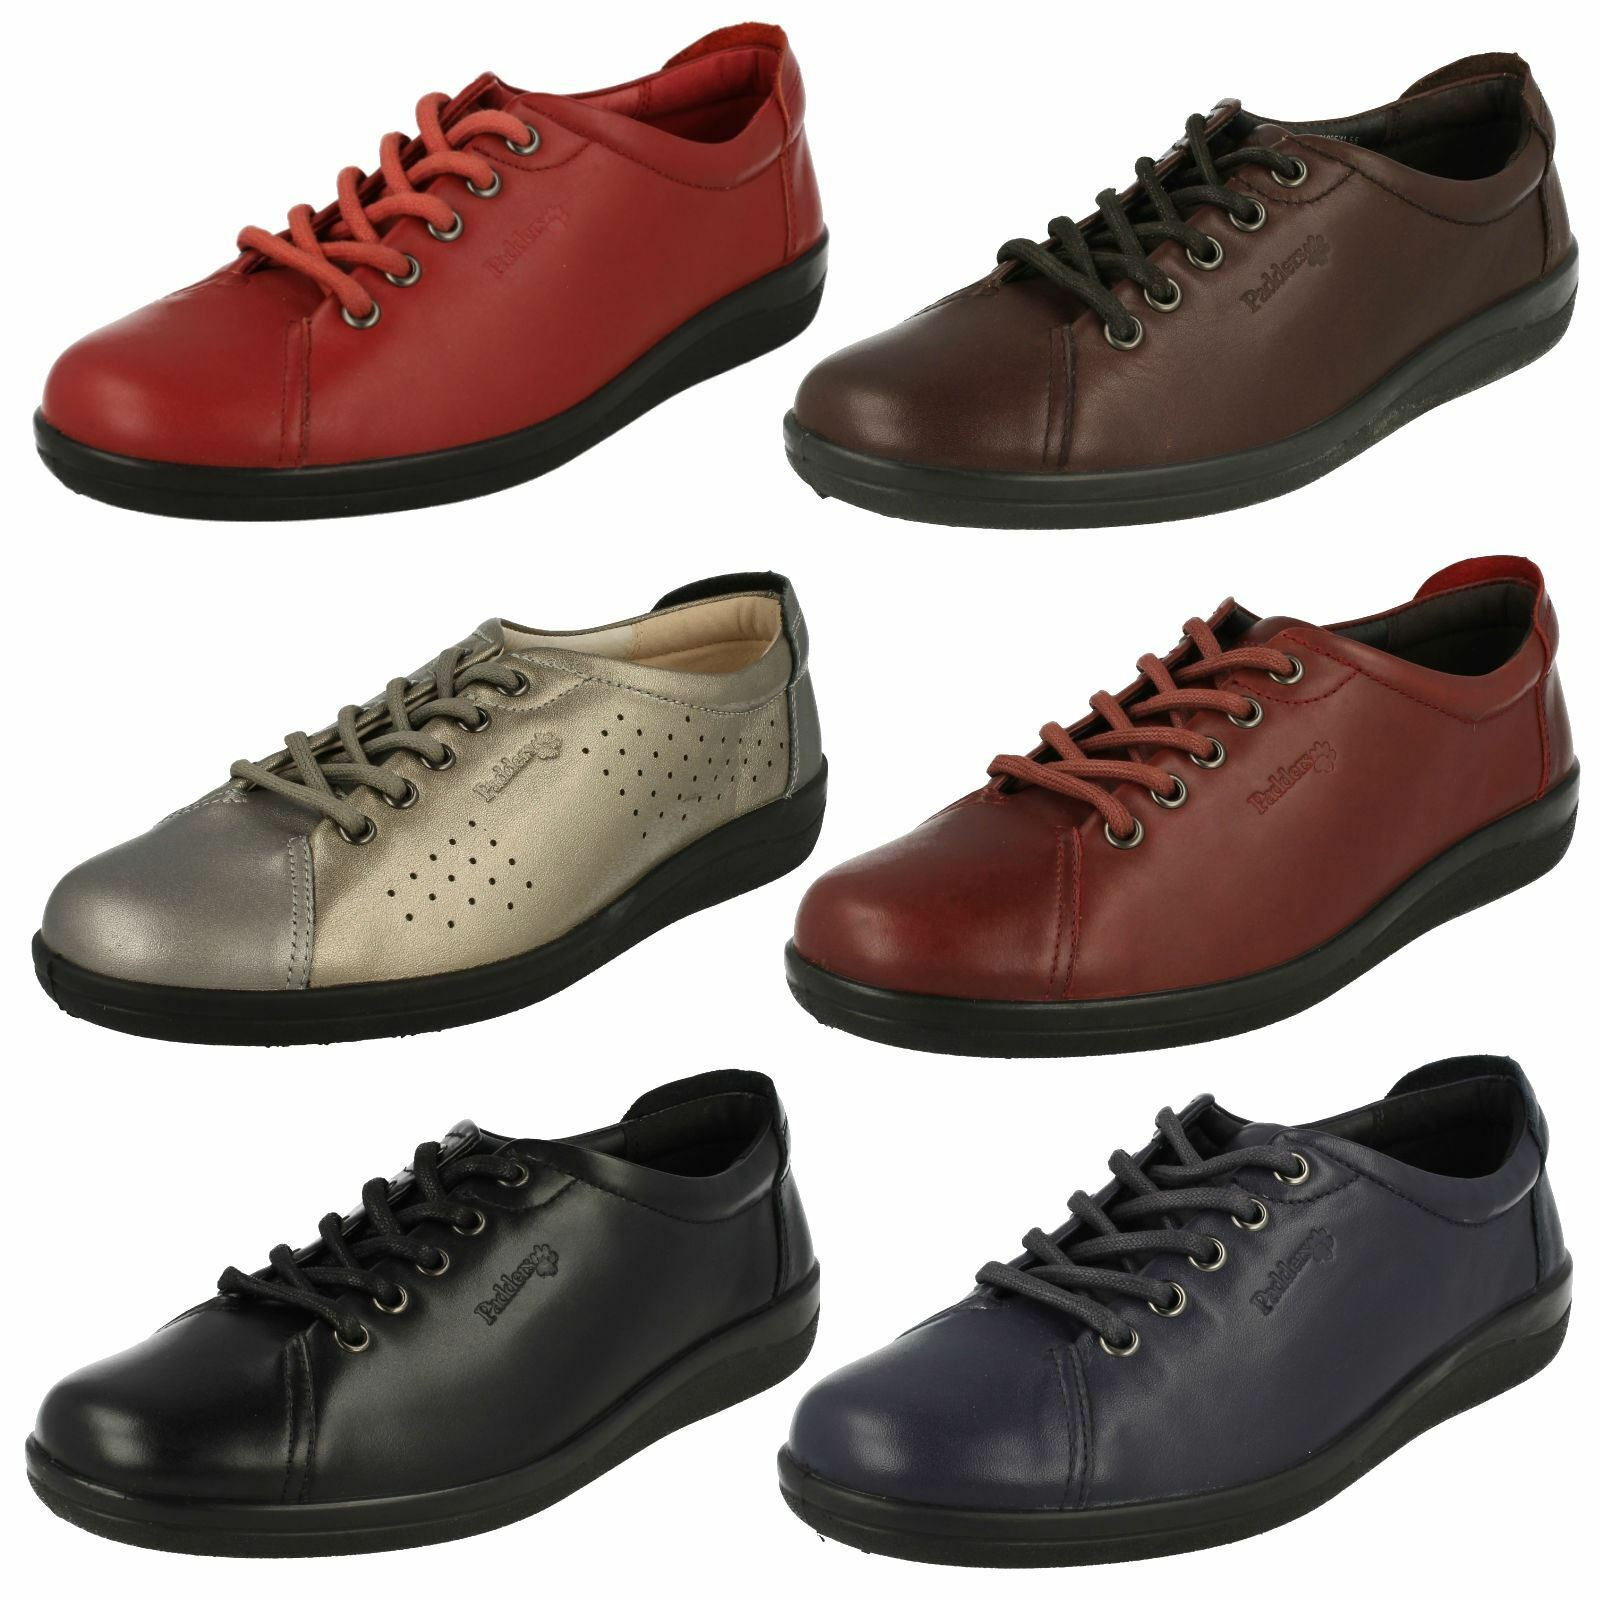 Zapatos promocionales para hombres y mujeres Ladies Padders Lace Up Everyday Shoes 'Galaxy'